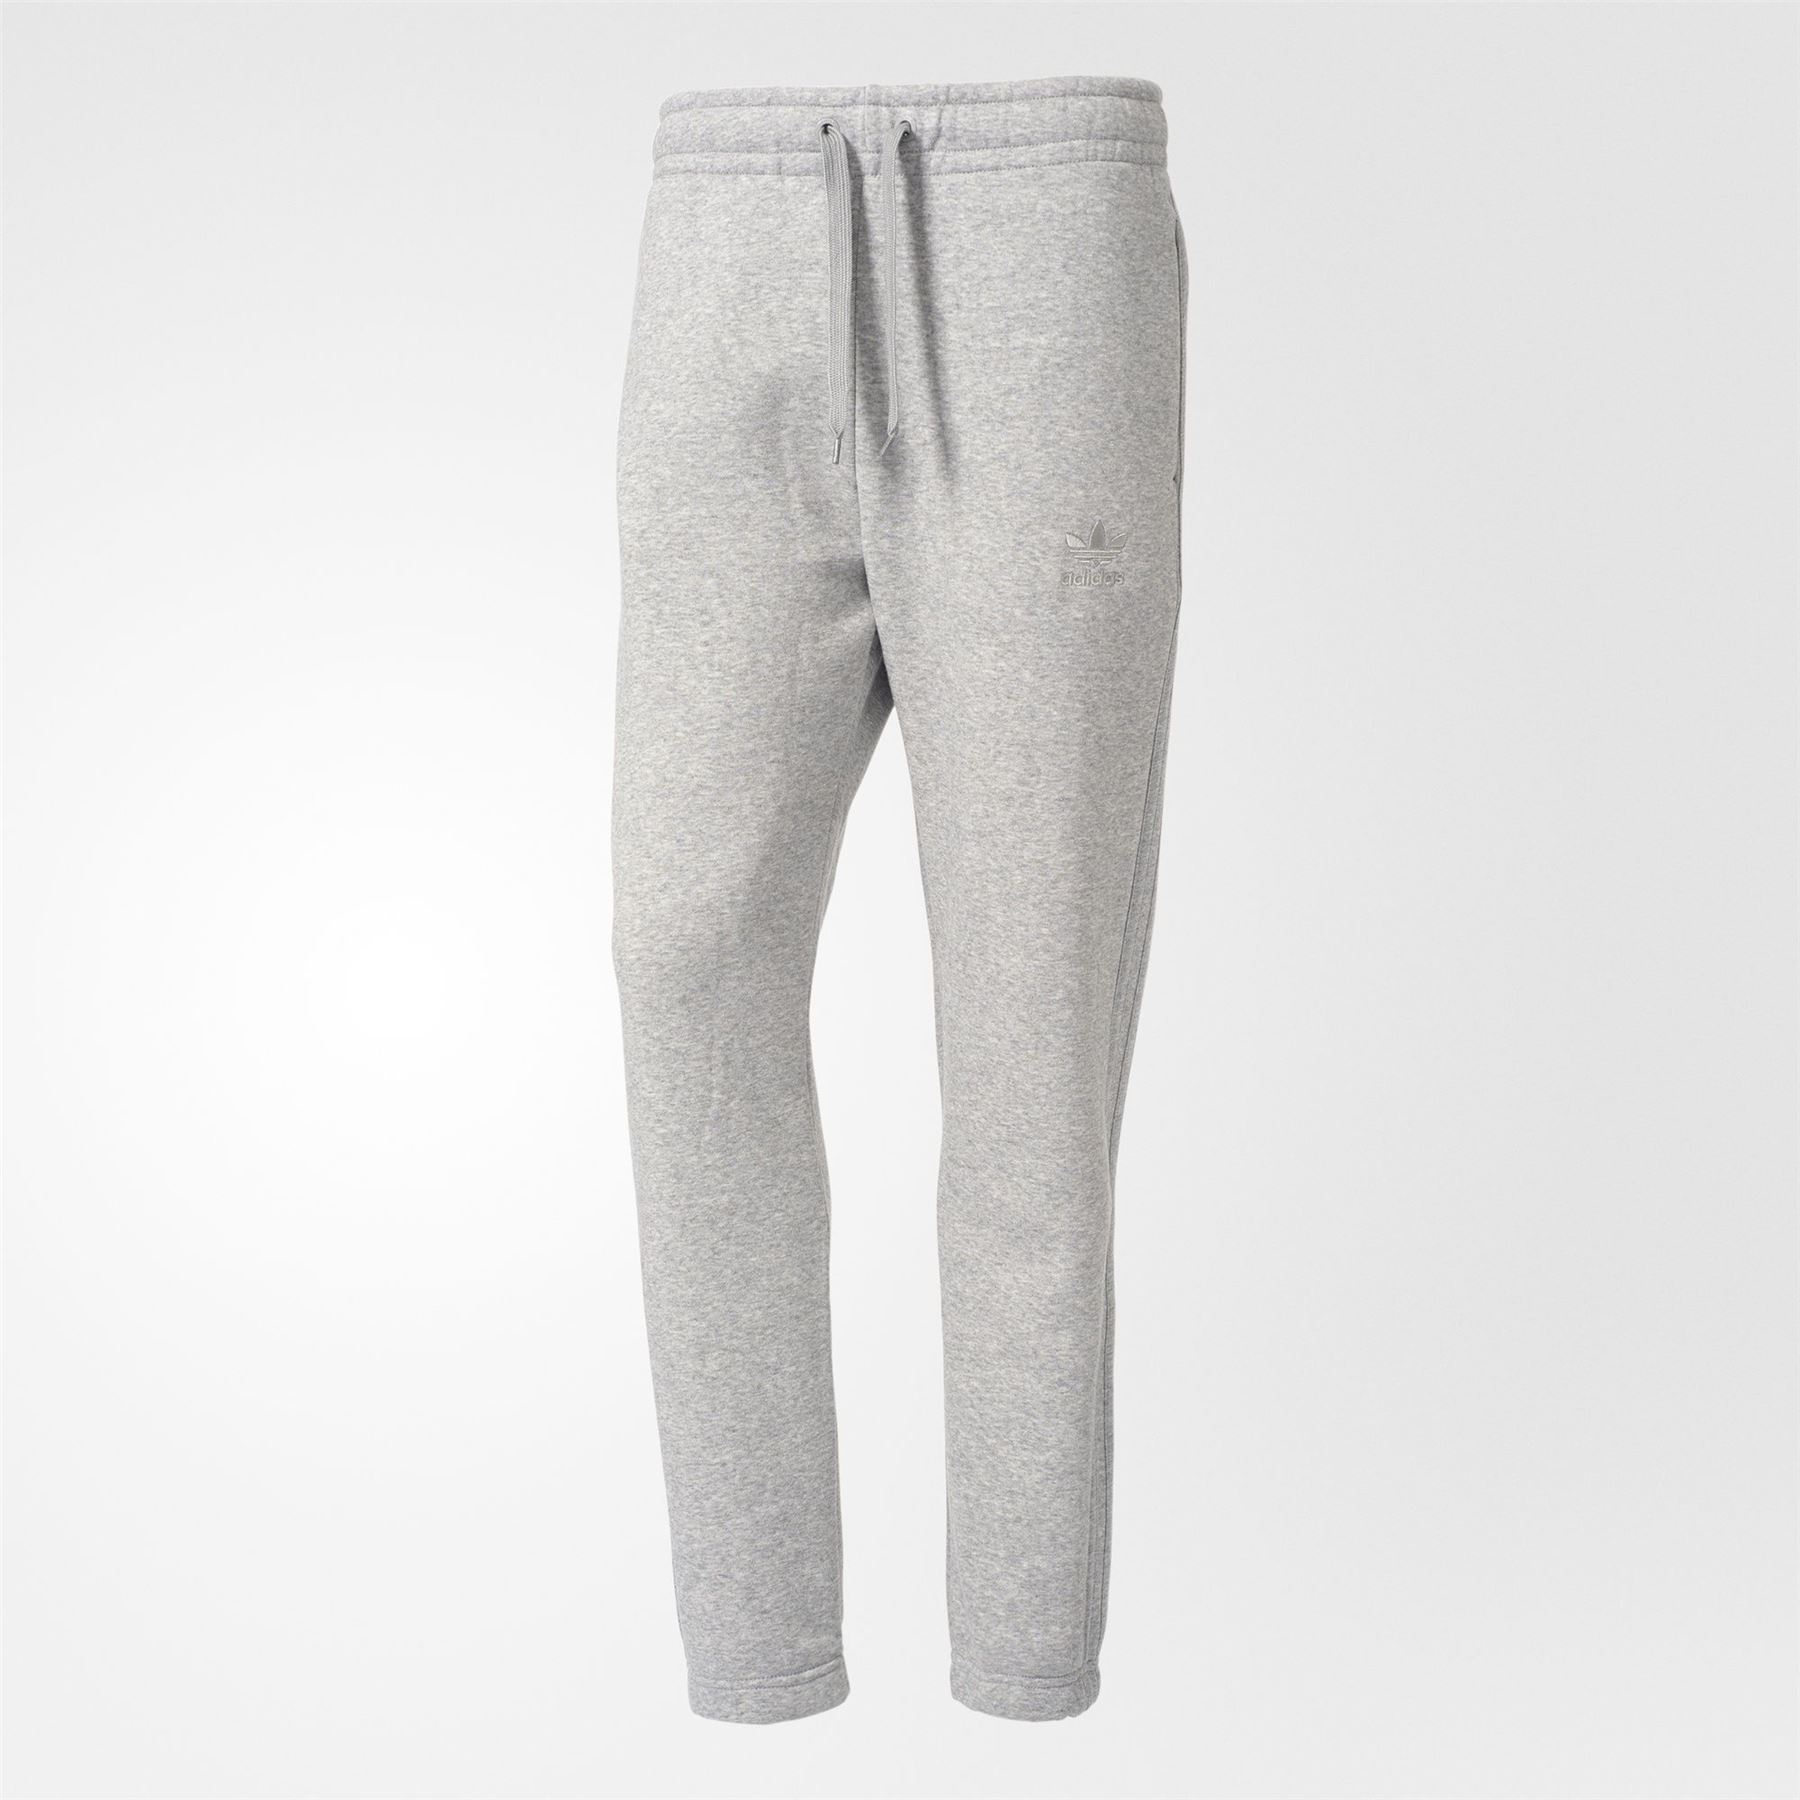 502457403 Details about adidas ORIGINALS TREFOIL SERIES SWEAT PANTS GREY JOGGERS  BOTTOMS MEN'S COMFY NEW